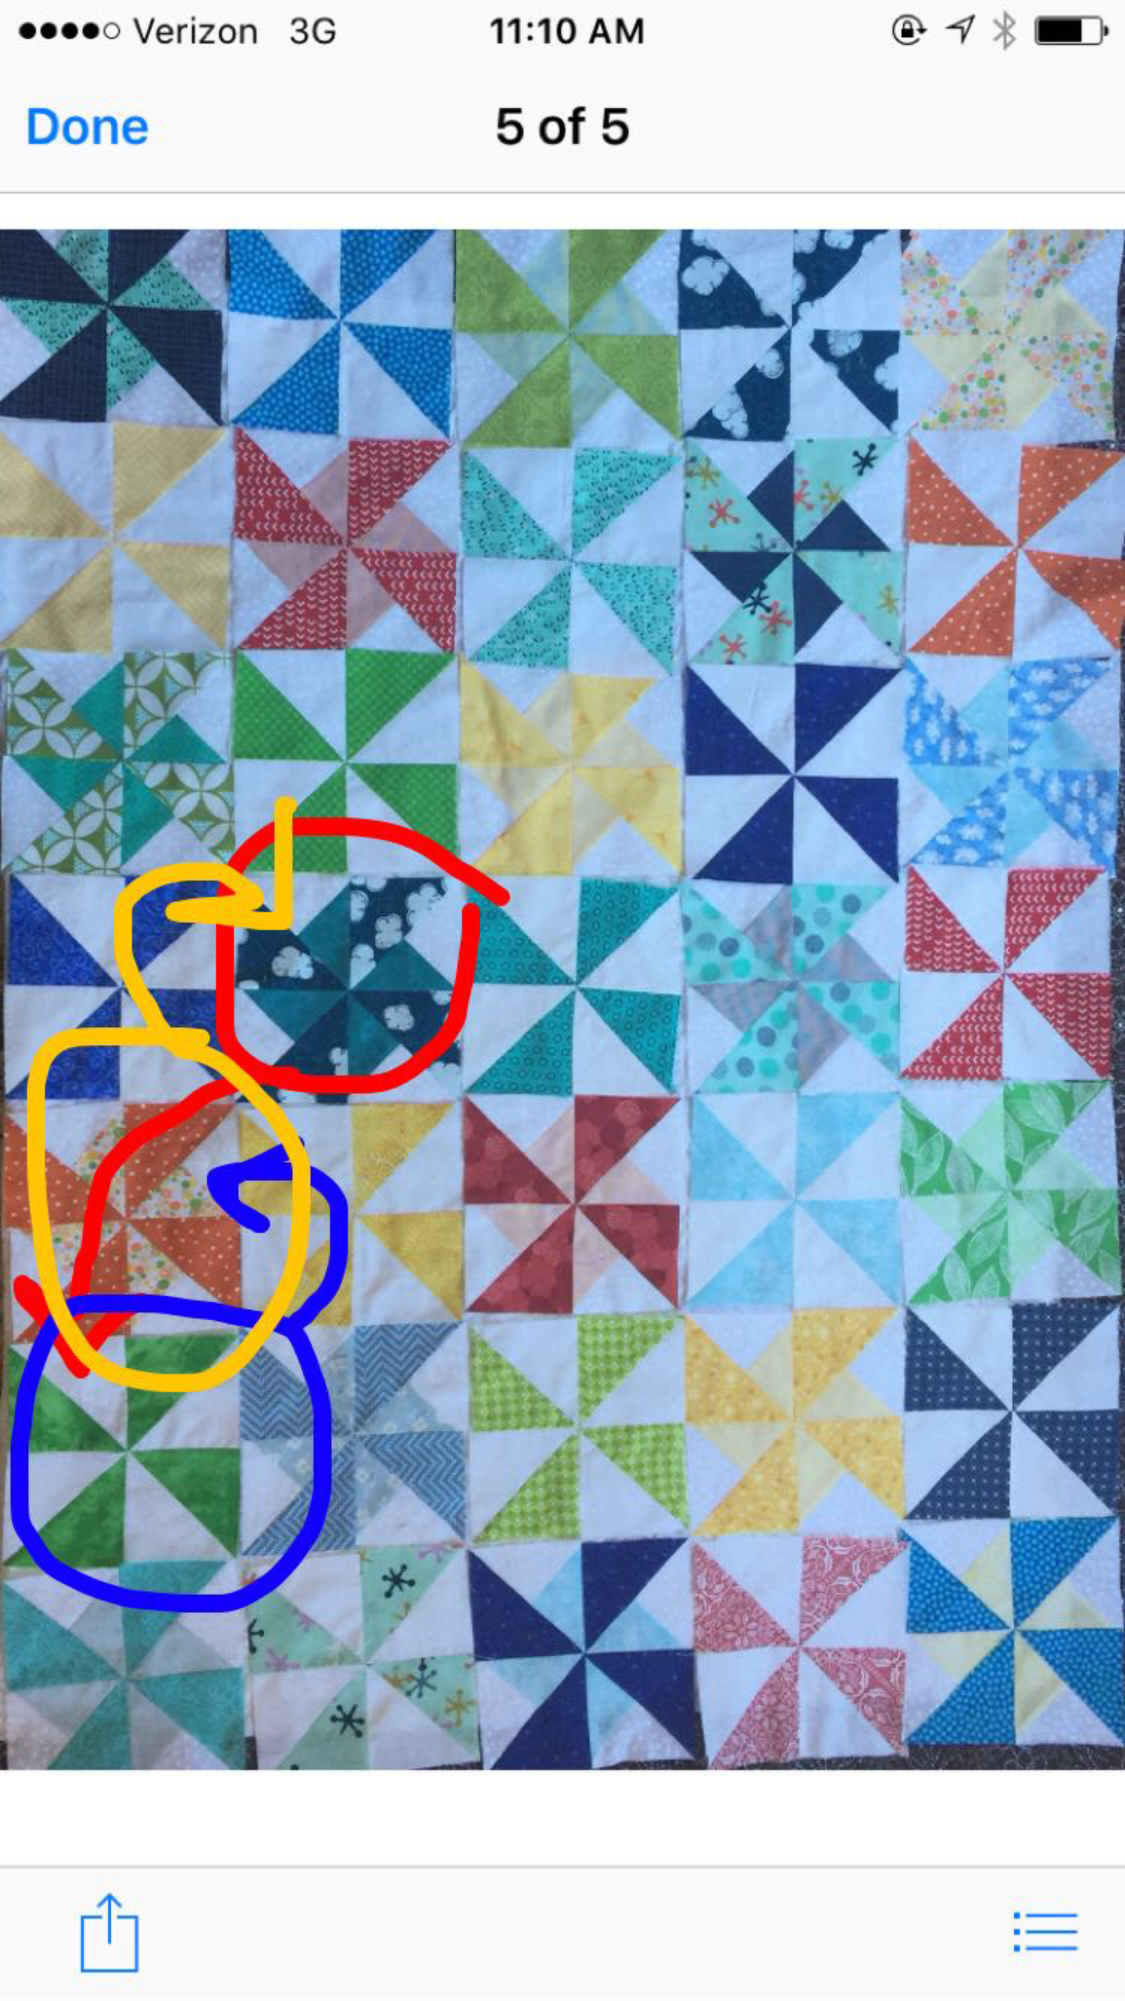 trying to decide on a quilt layout with snapchat haha